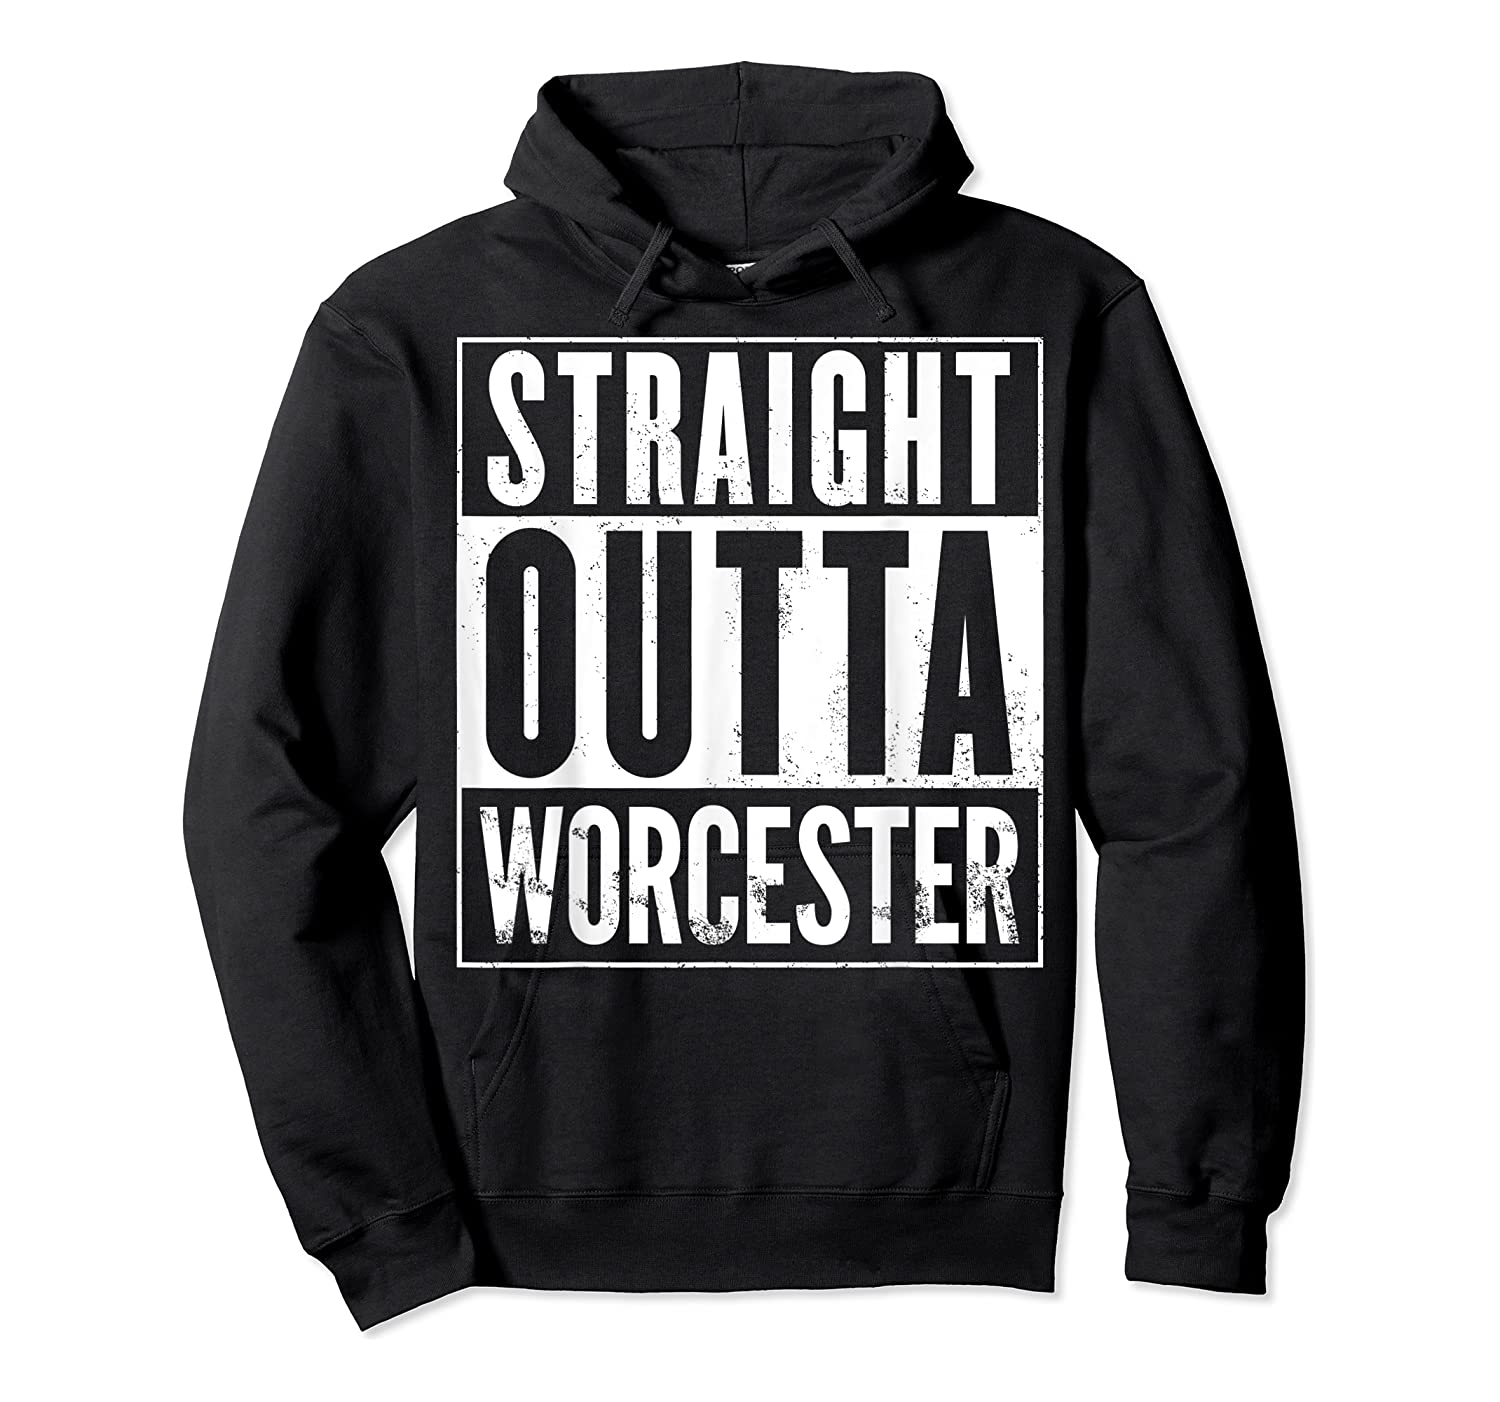 Straight Outta Worcester Distressed Vintage Funny Shirts Unisex Pullover Hoodie